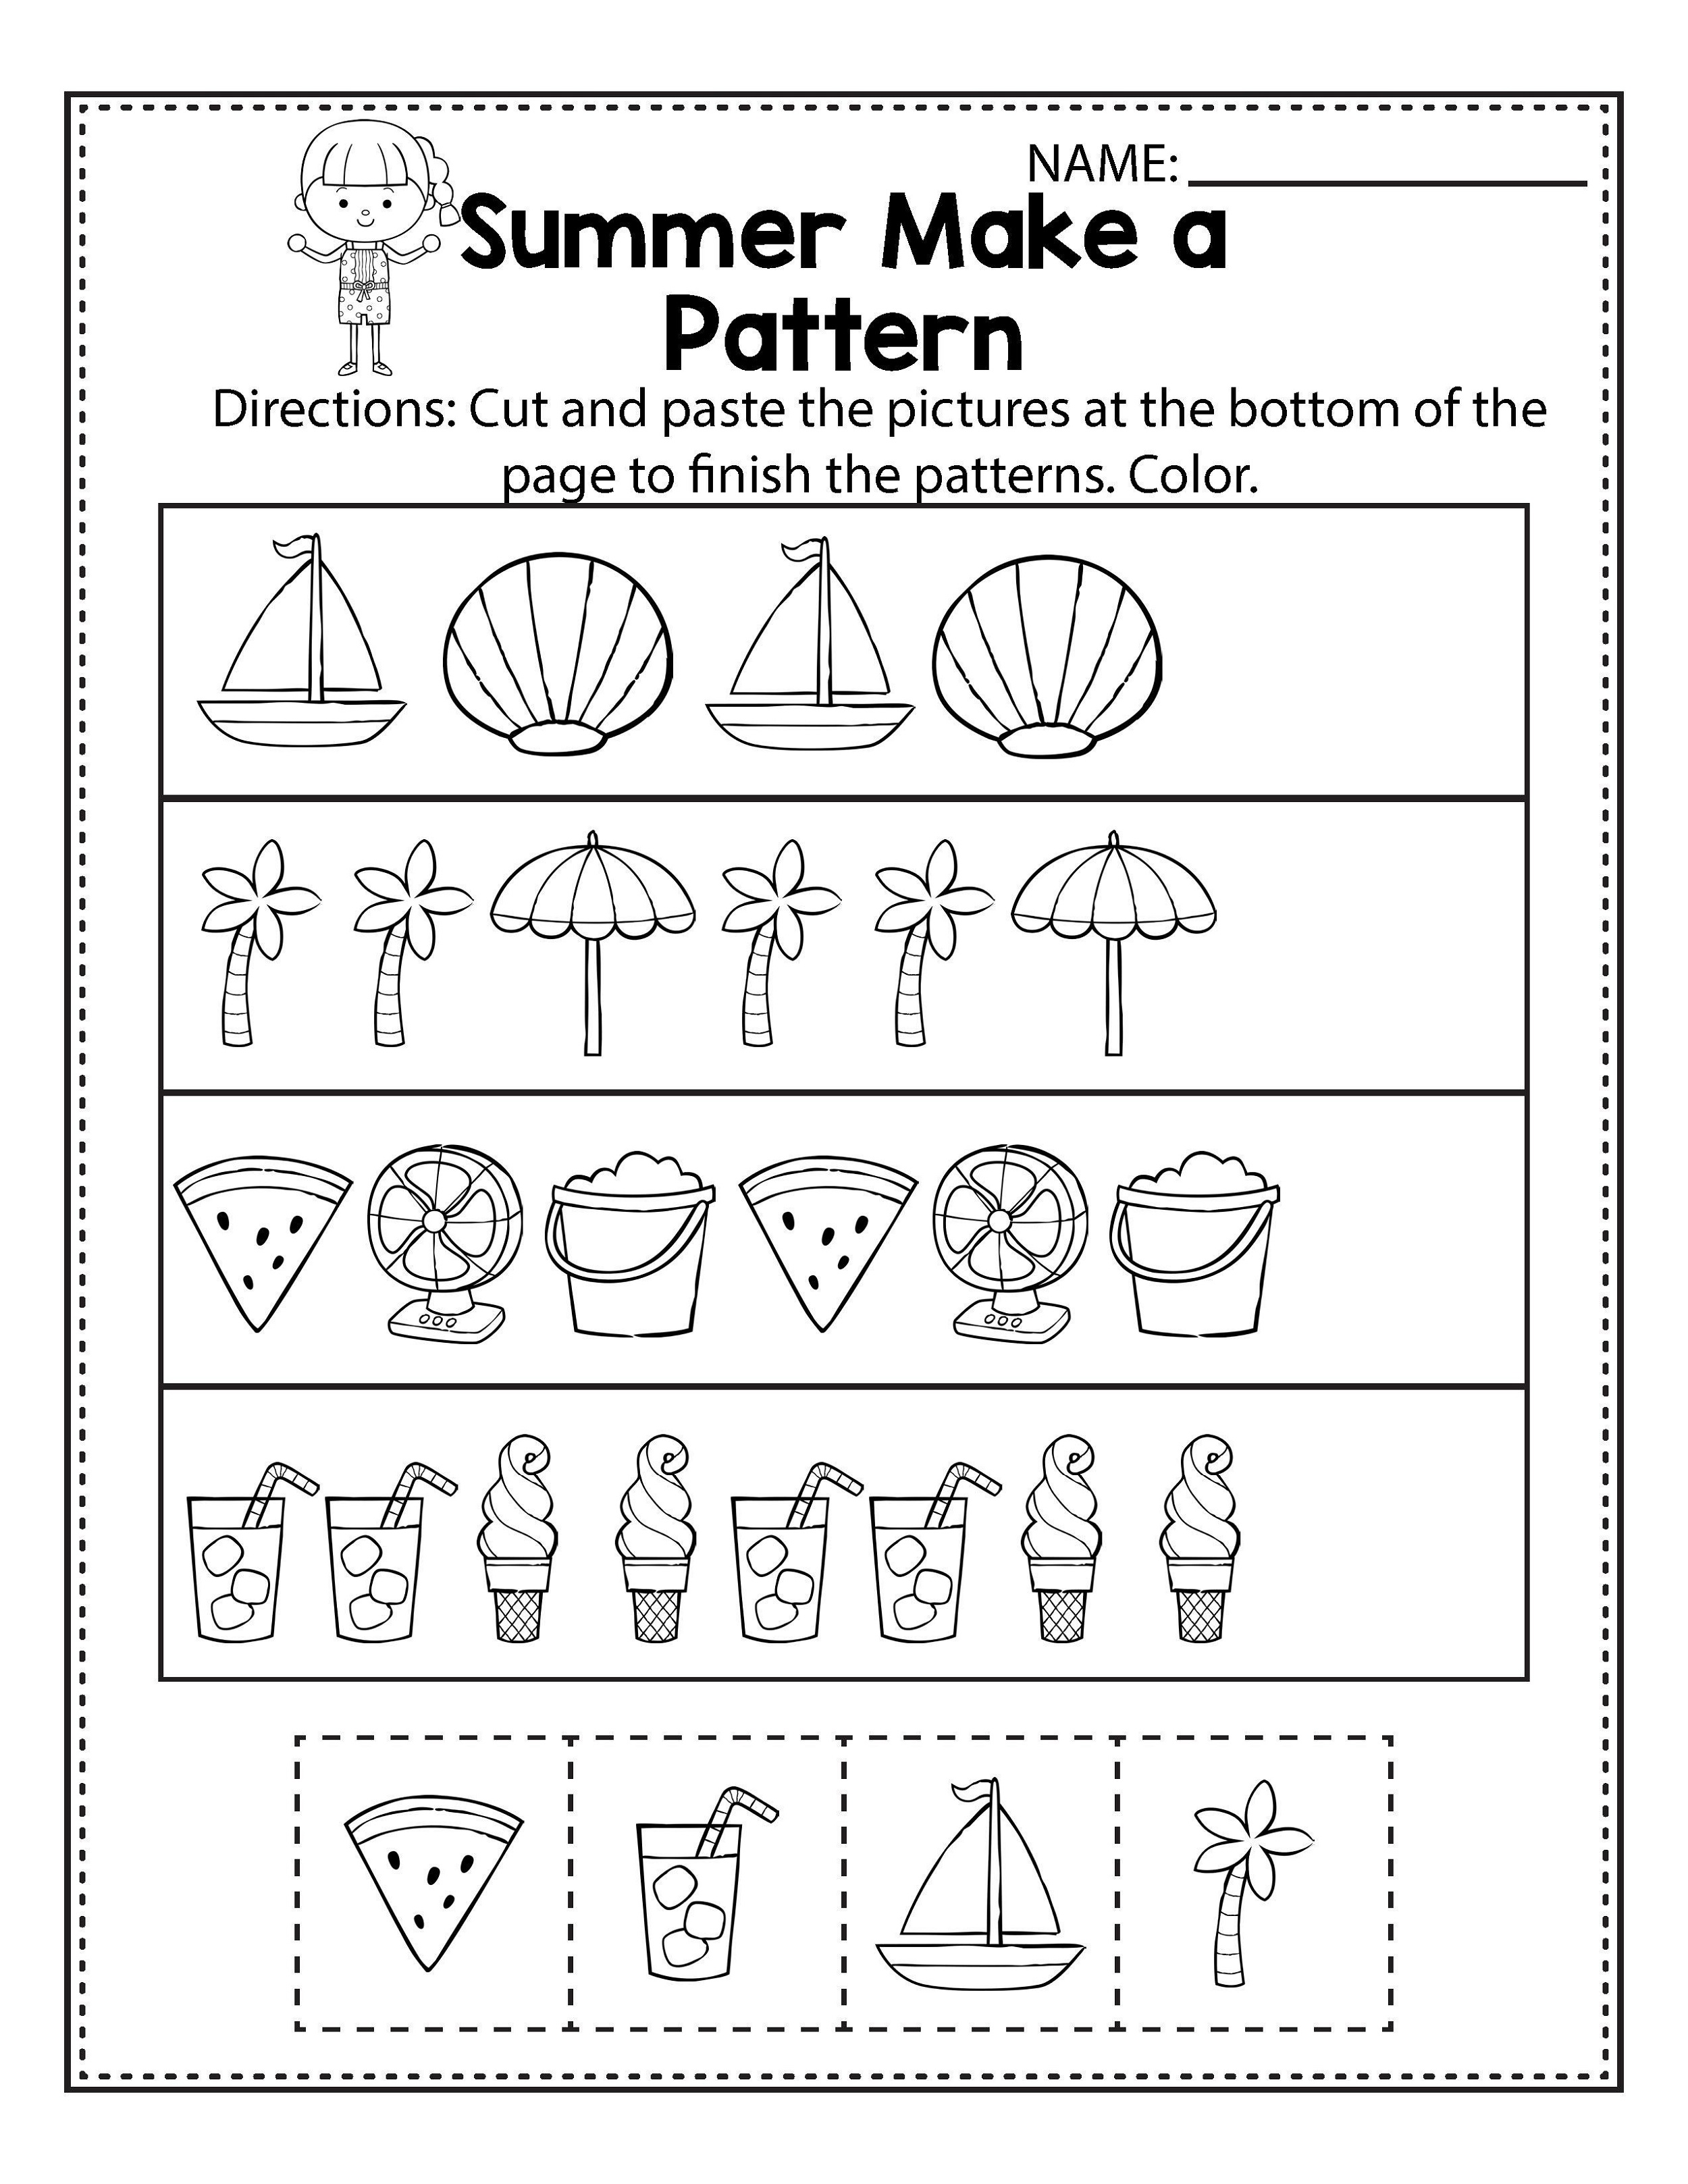 Elementary-Math-Worksheets-Pattern